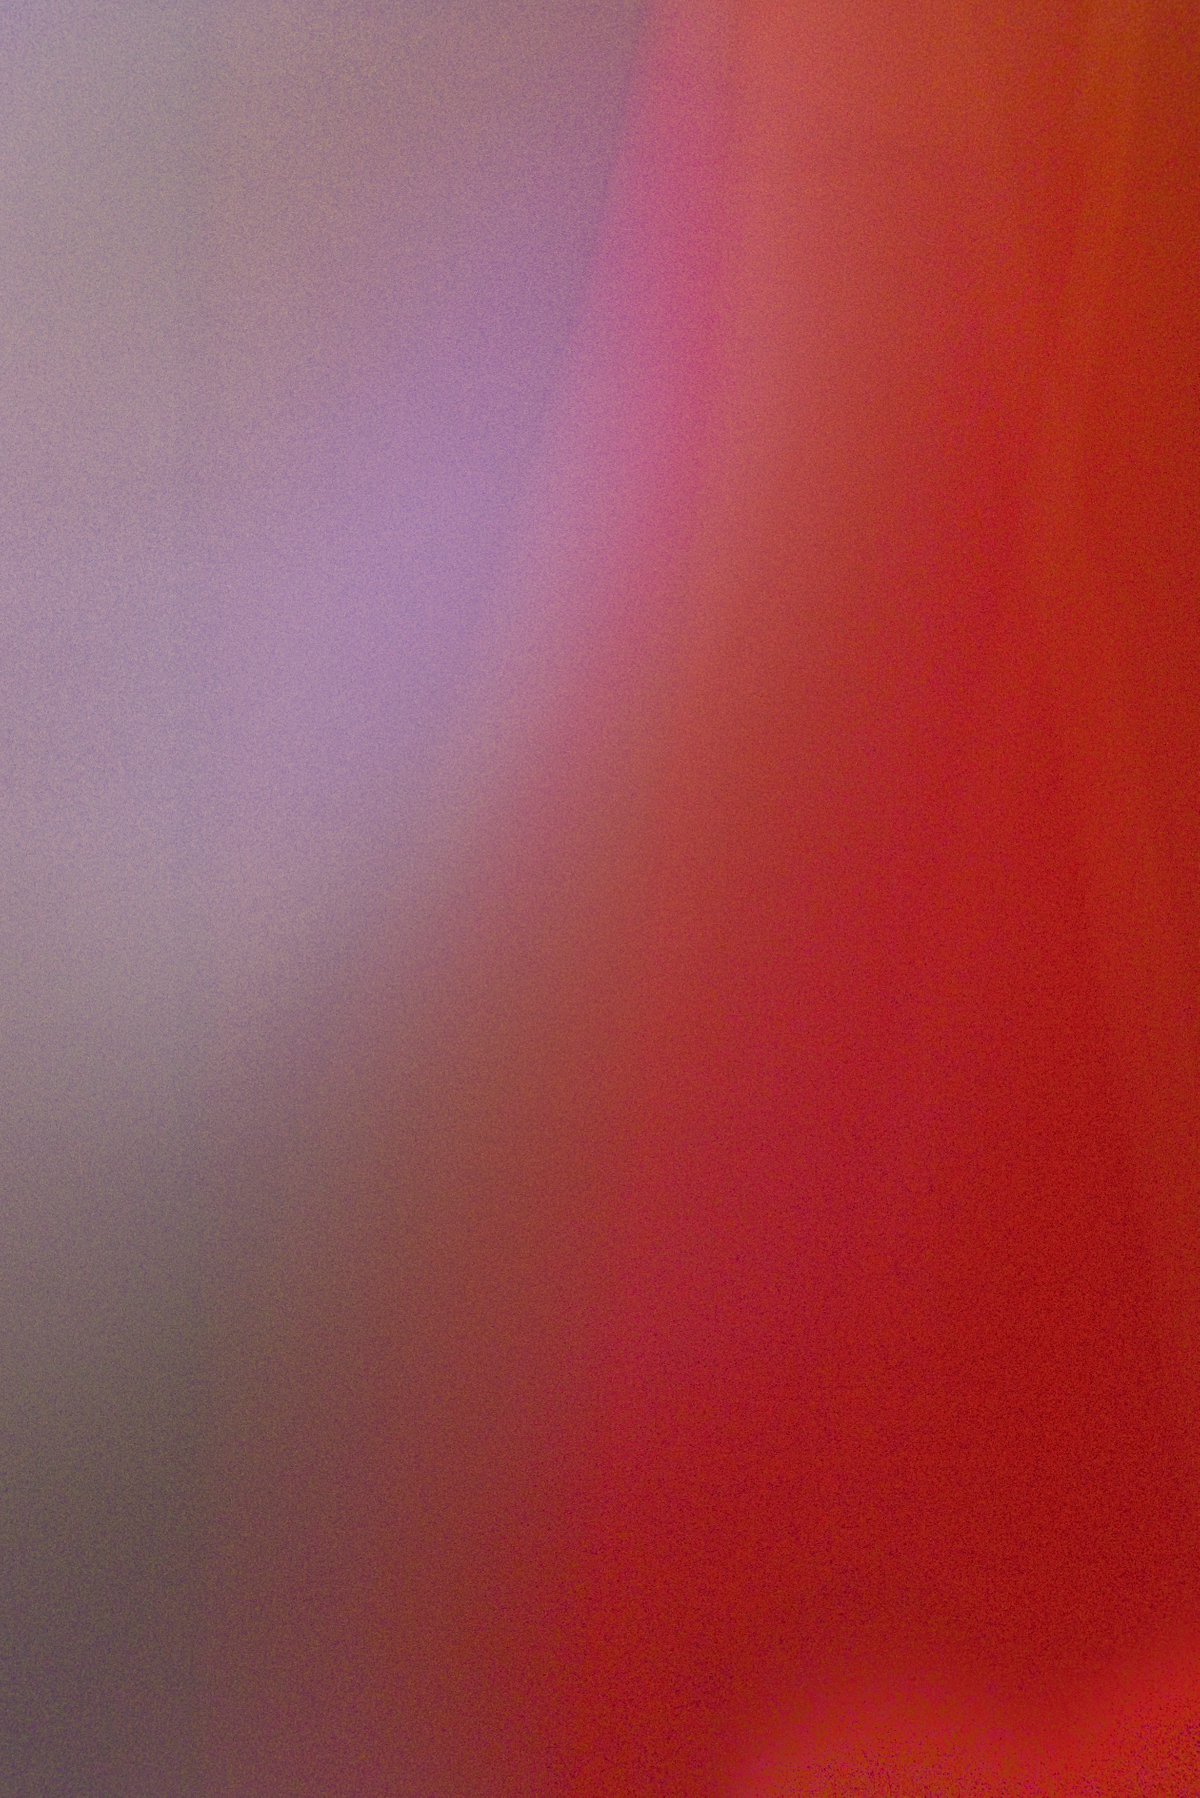 Hommage To Turell, 2007, Abstract Color Photography, Shirine Gill